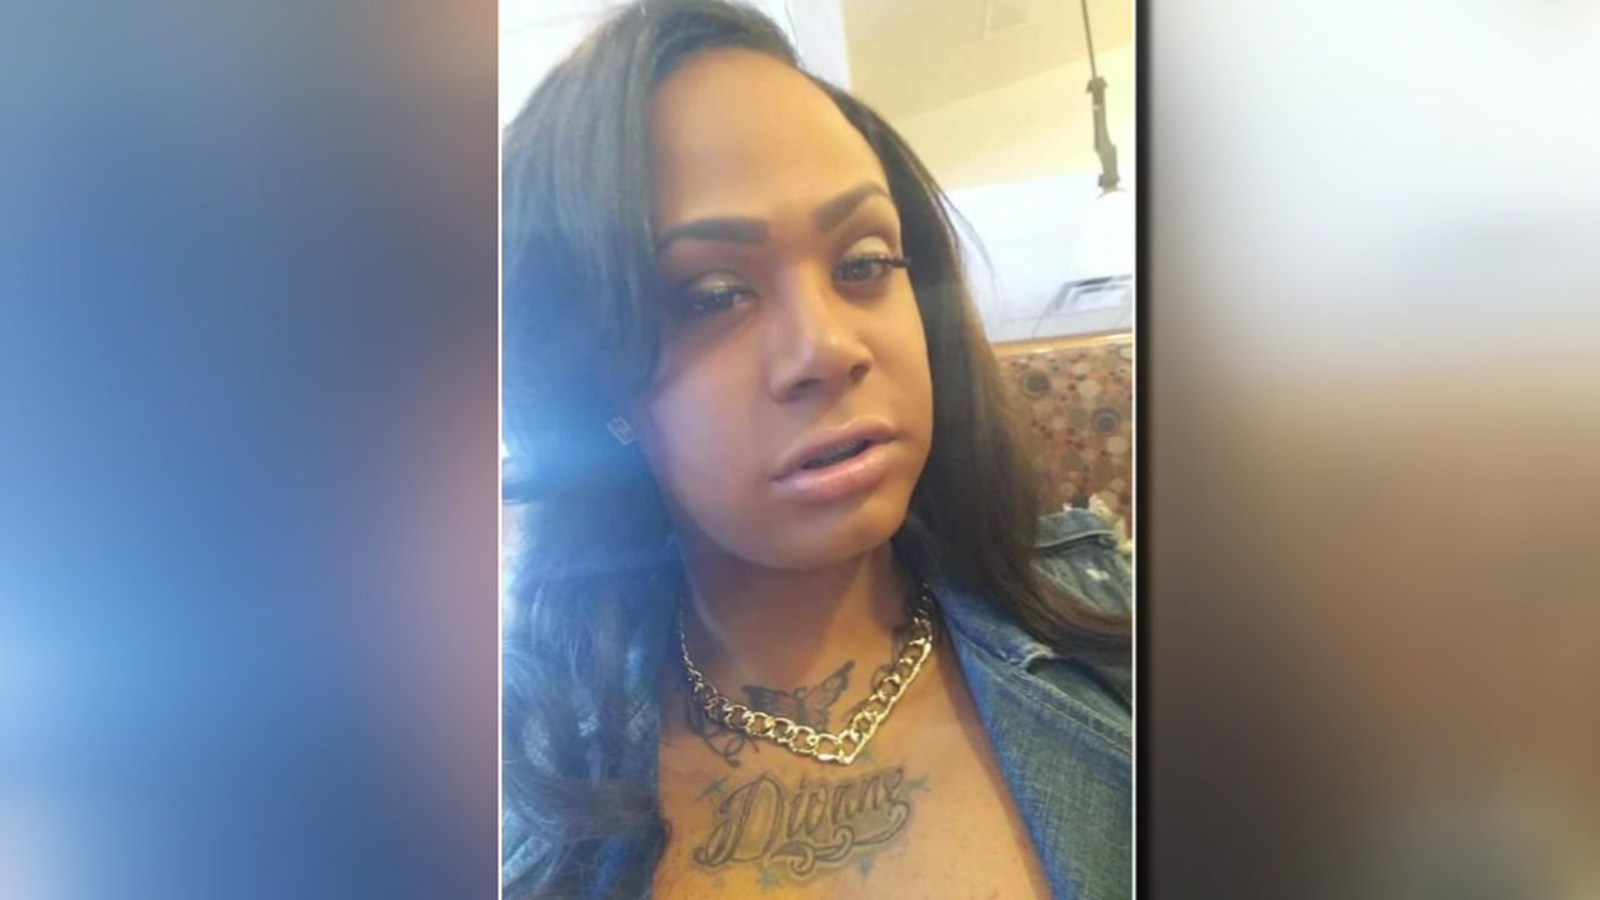 Transgender inmate will be finally moved to women's facility, per DPS